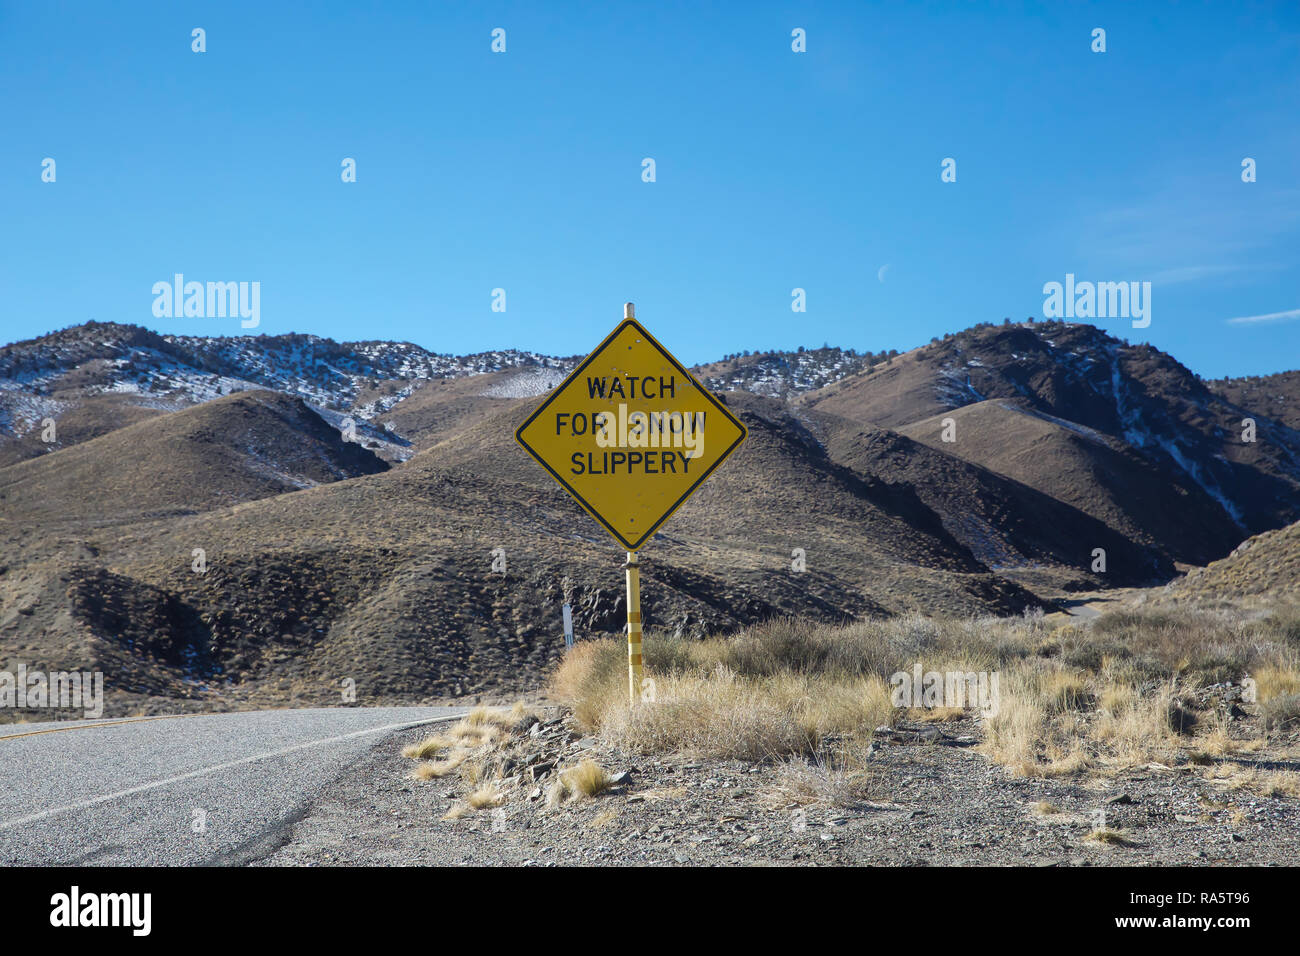 Watch for snow slippery sign on the road from Bishop in California to Las vegas Nevada,Desert, USA - Stock Image